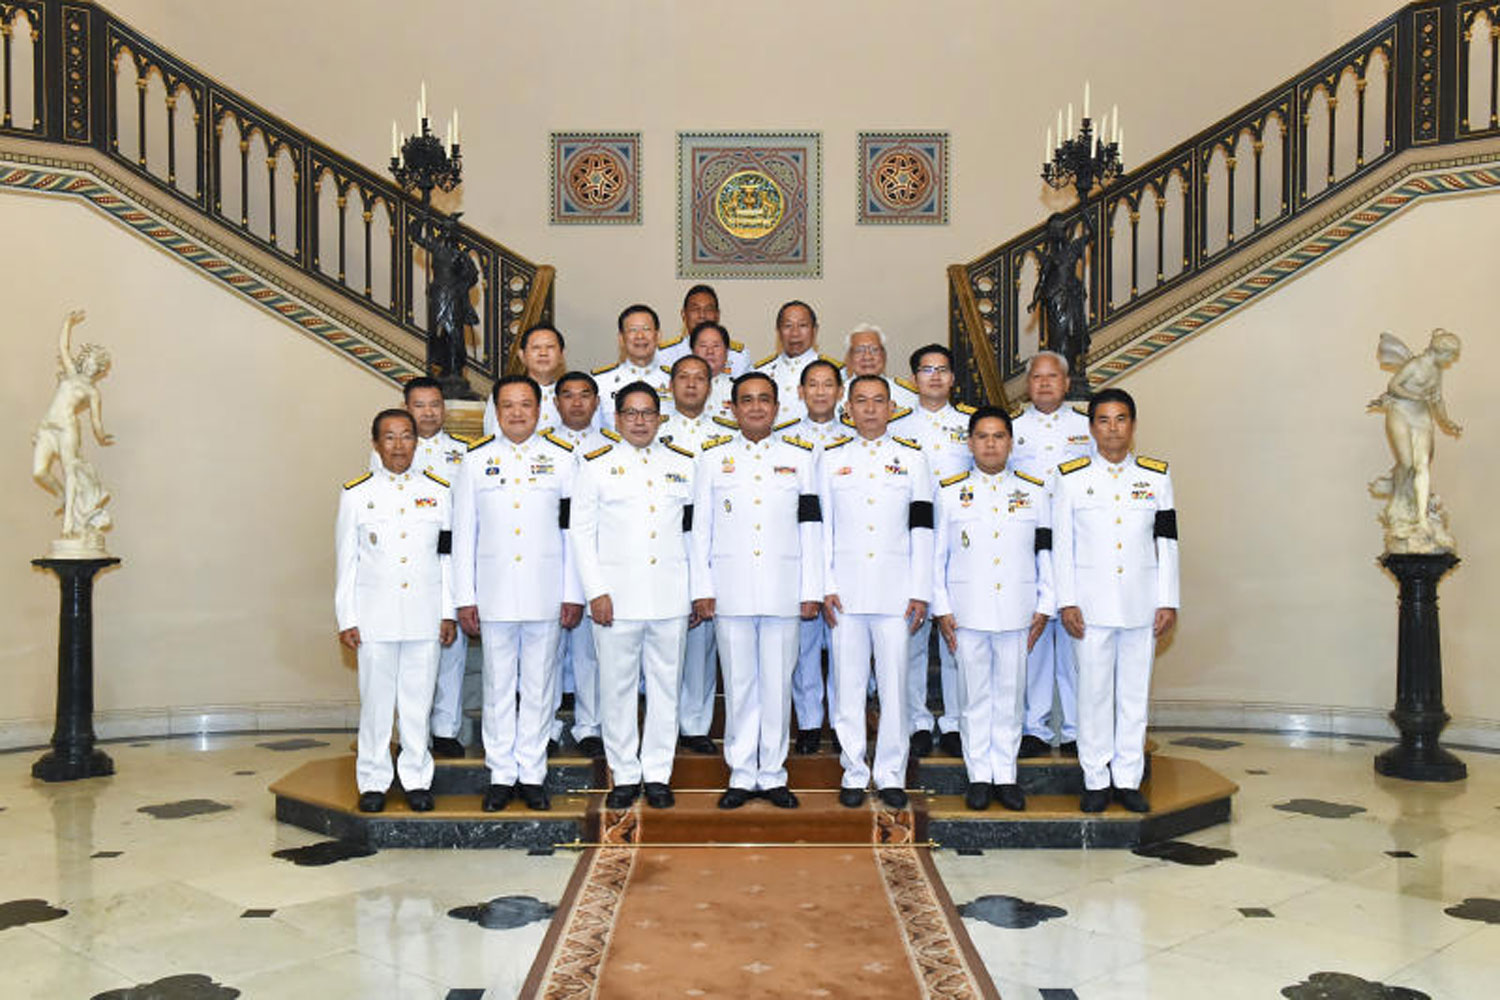 Prime Minister Prayut Chan-o-cha, centre, poses for photos with senior representatives of his coalition parties at Government House on June 11 after being royally appointed as the new prime minister. (Government House photo)